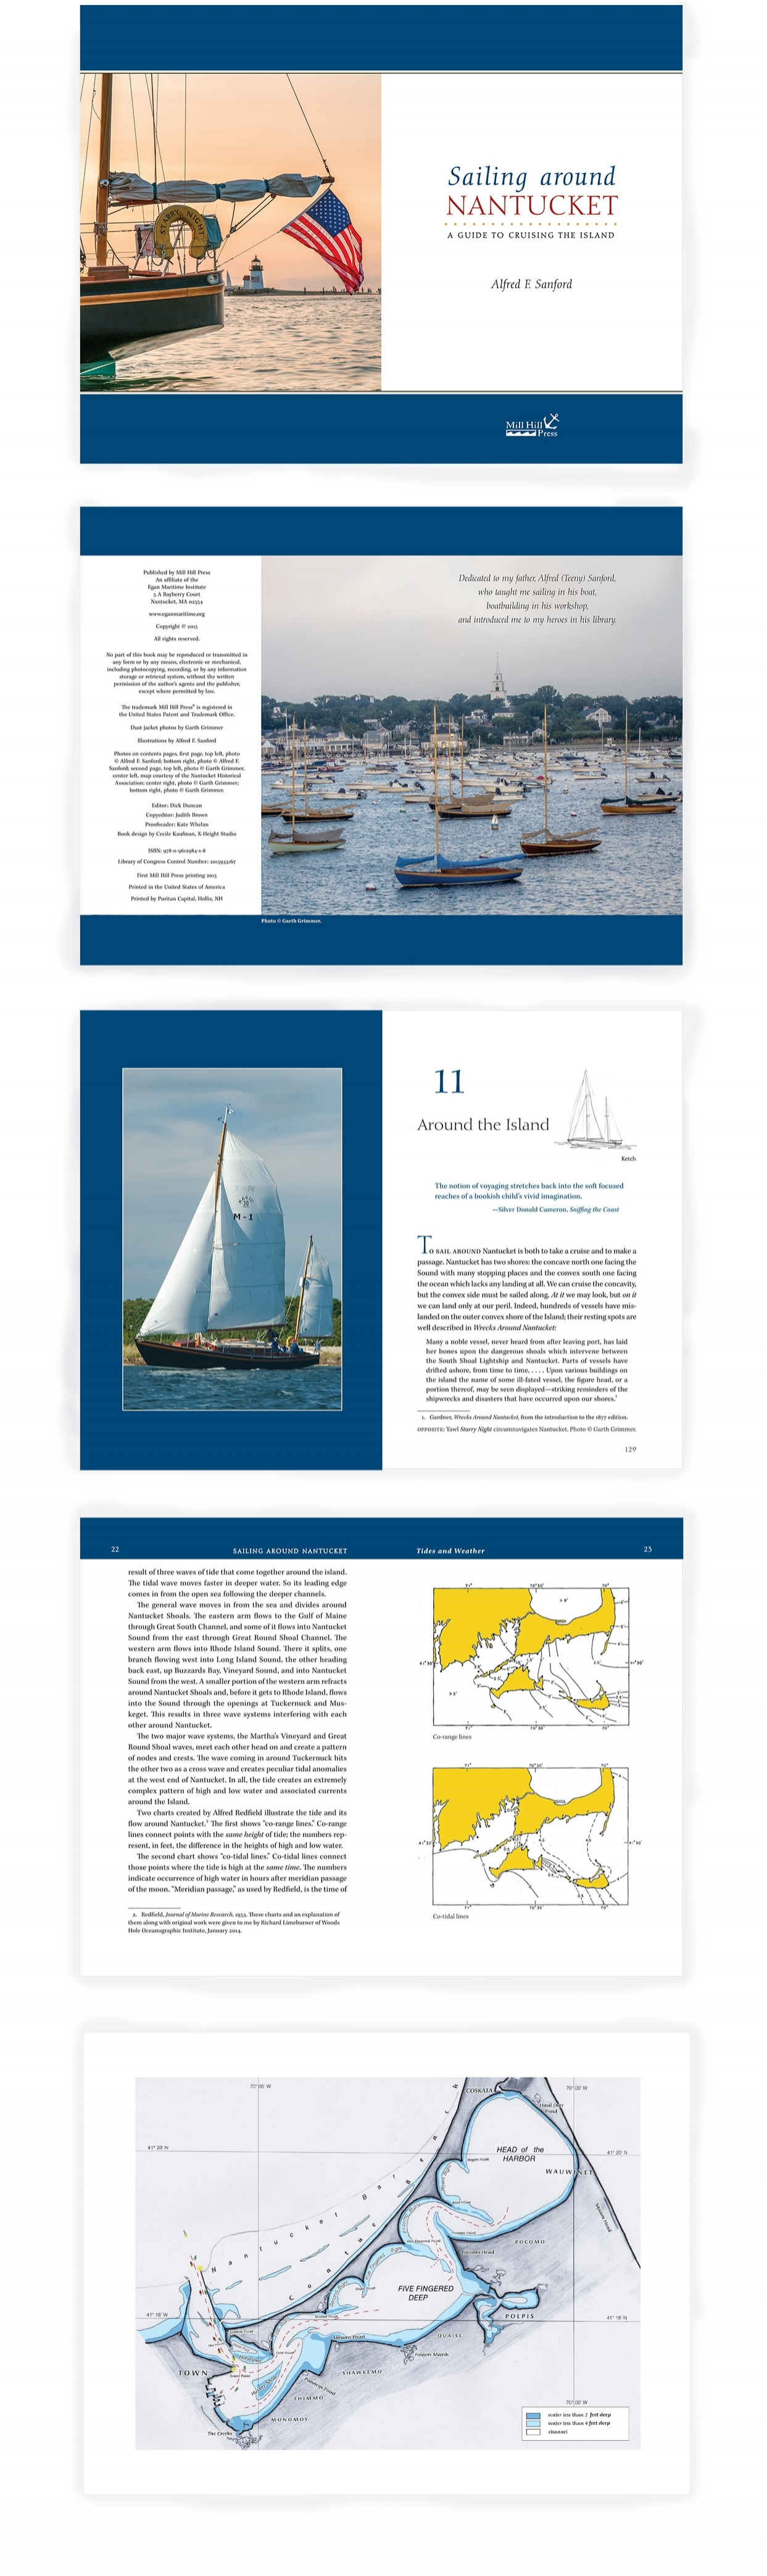 Sailing_around_Nantucket_spreads.jpg